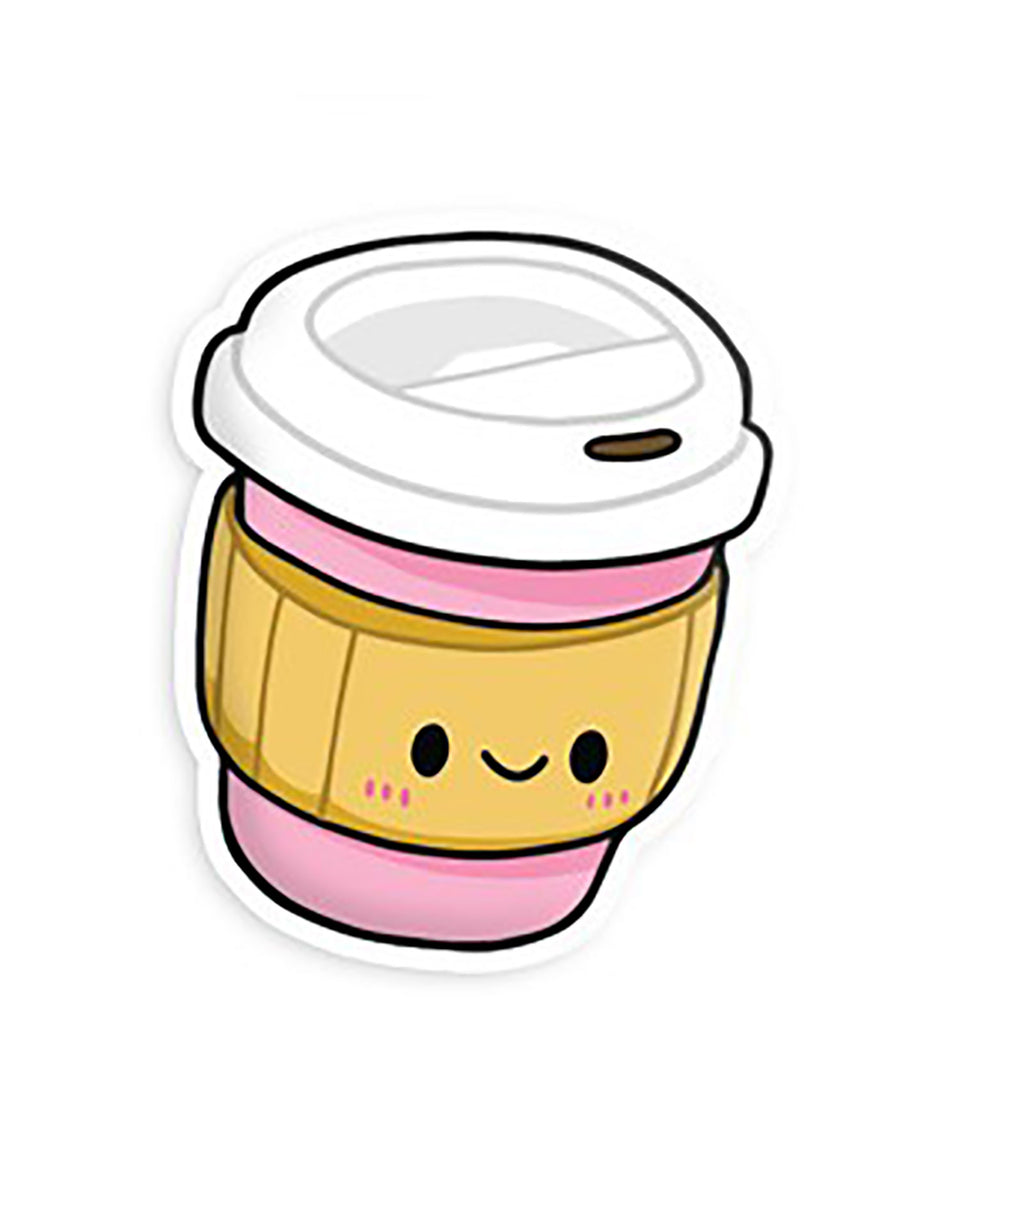 Squishable Vinyl Sticker Pink Coffee Cup